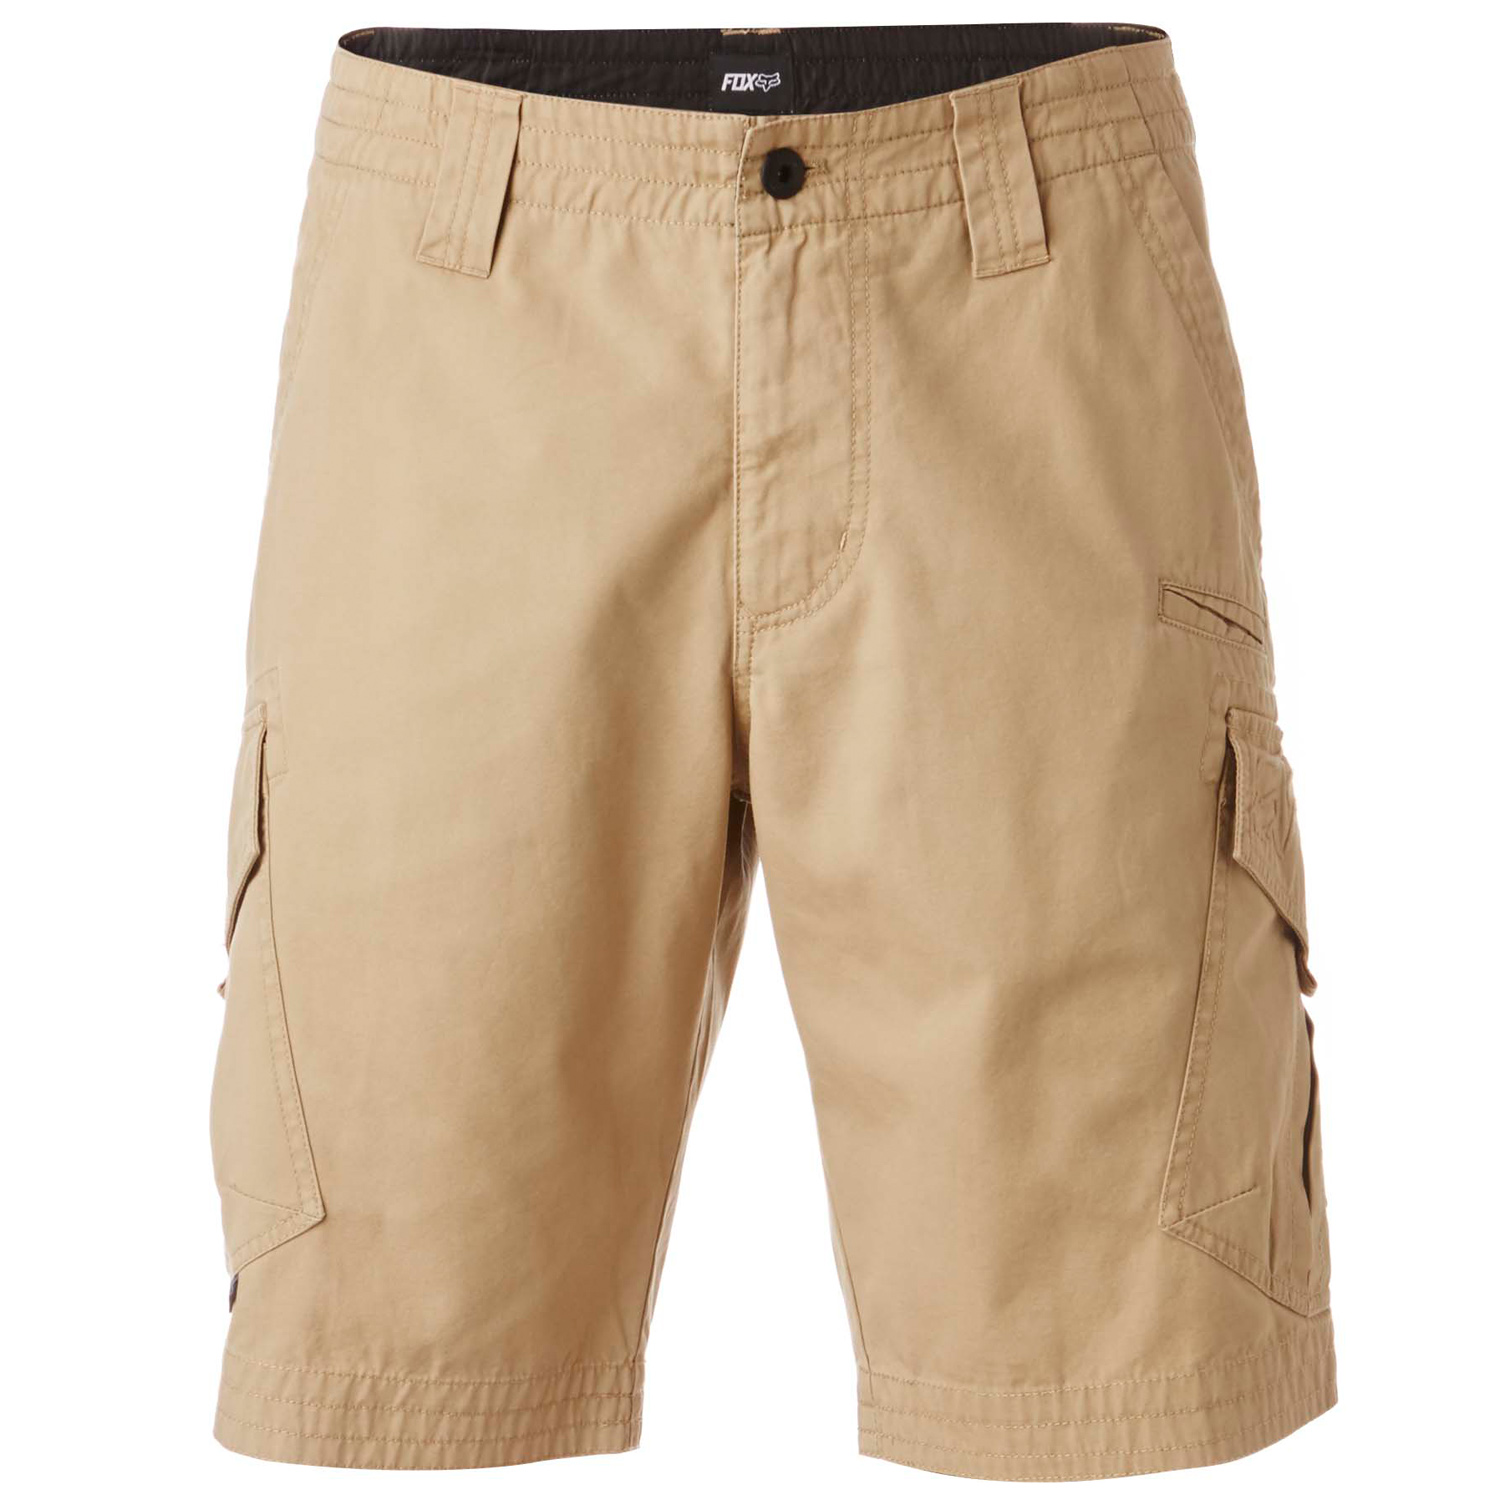 Fox Cargo Short Slambozo Dark Khaki